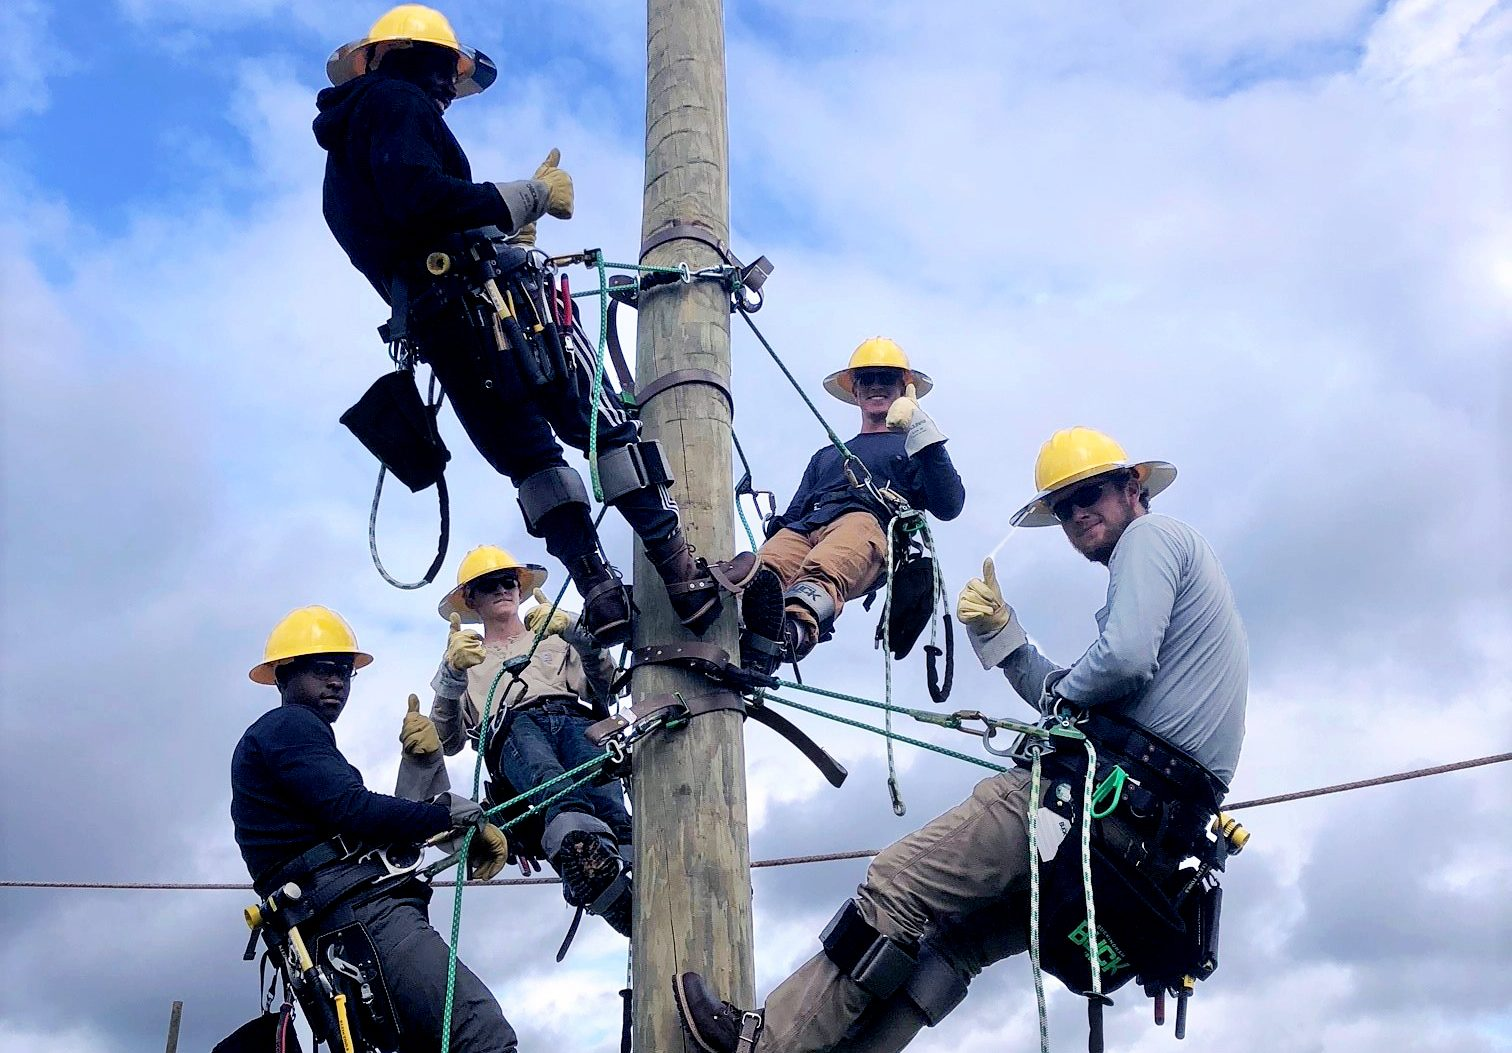 linemen on telephone pole working on power lines